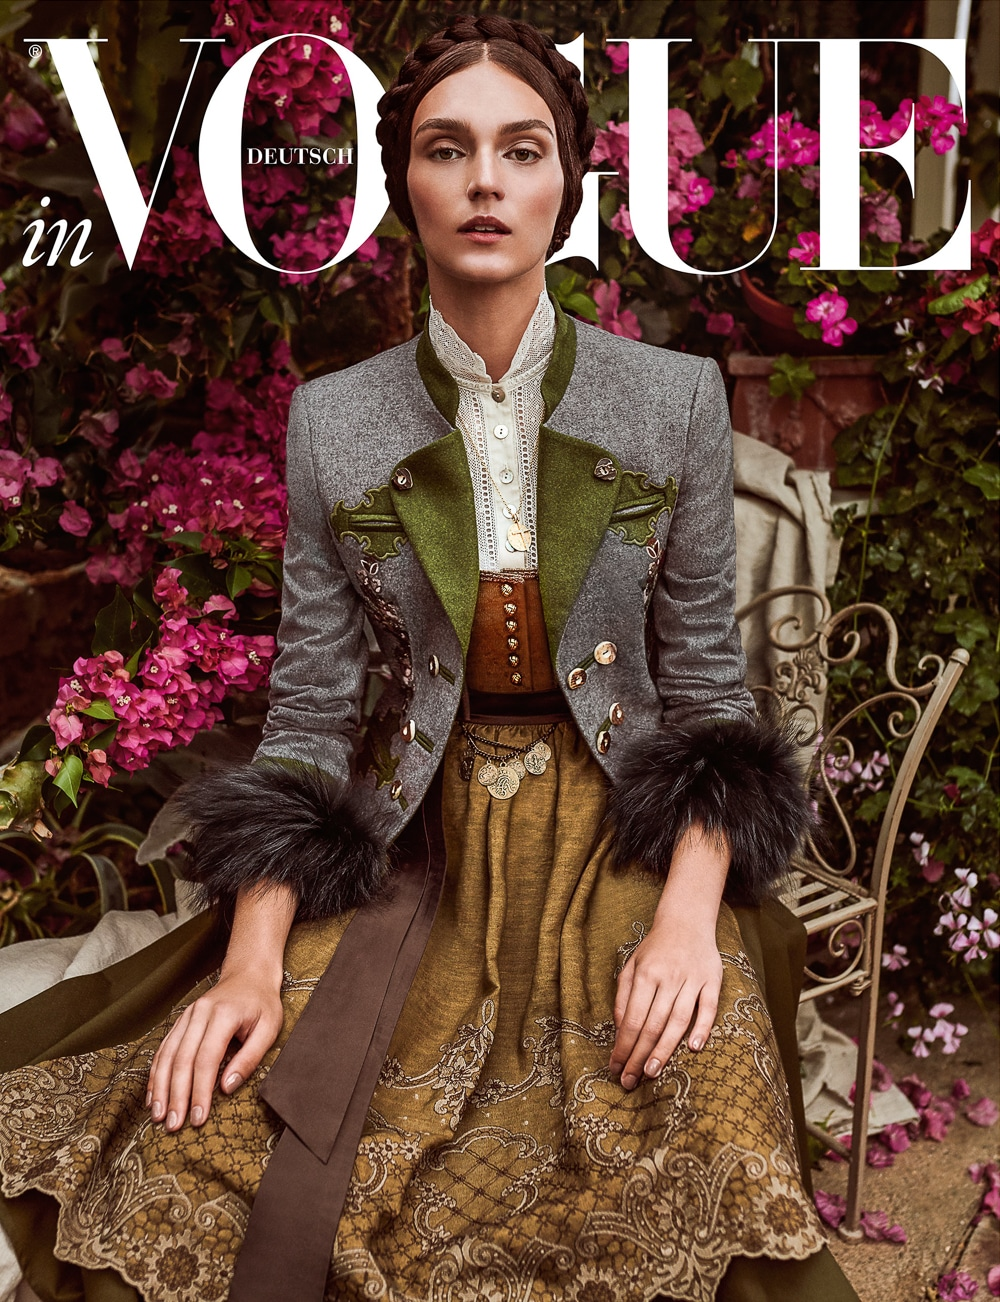 Vogue-Germany-August-2018-Deimante-Misiunaite-Andreas-Ortner-4.jpg